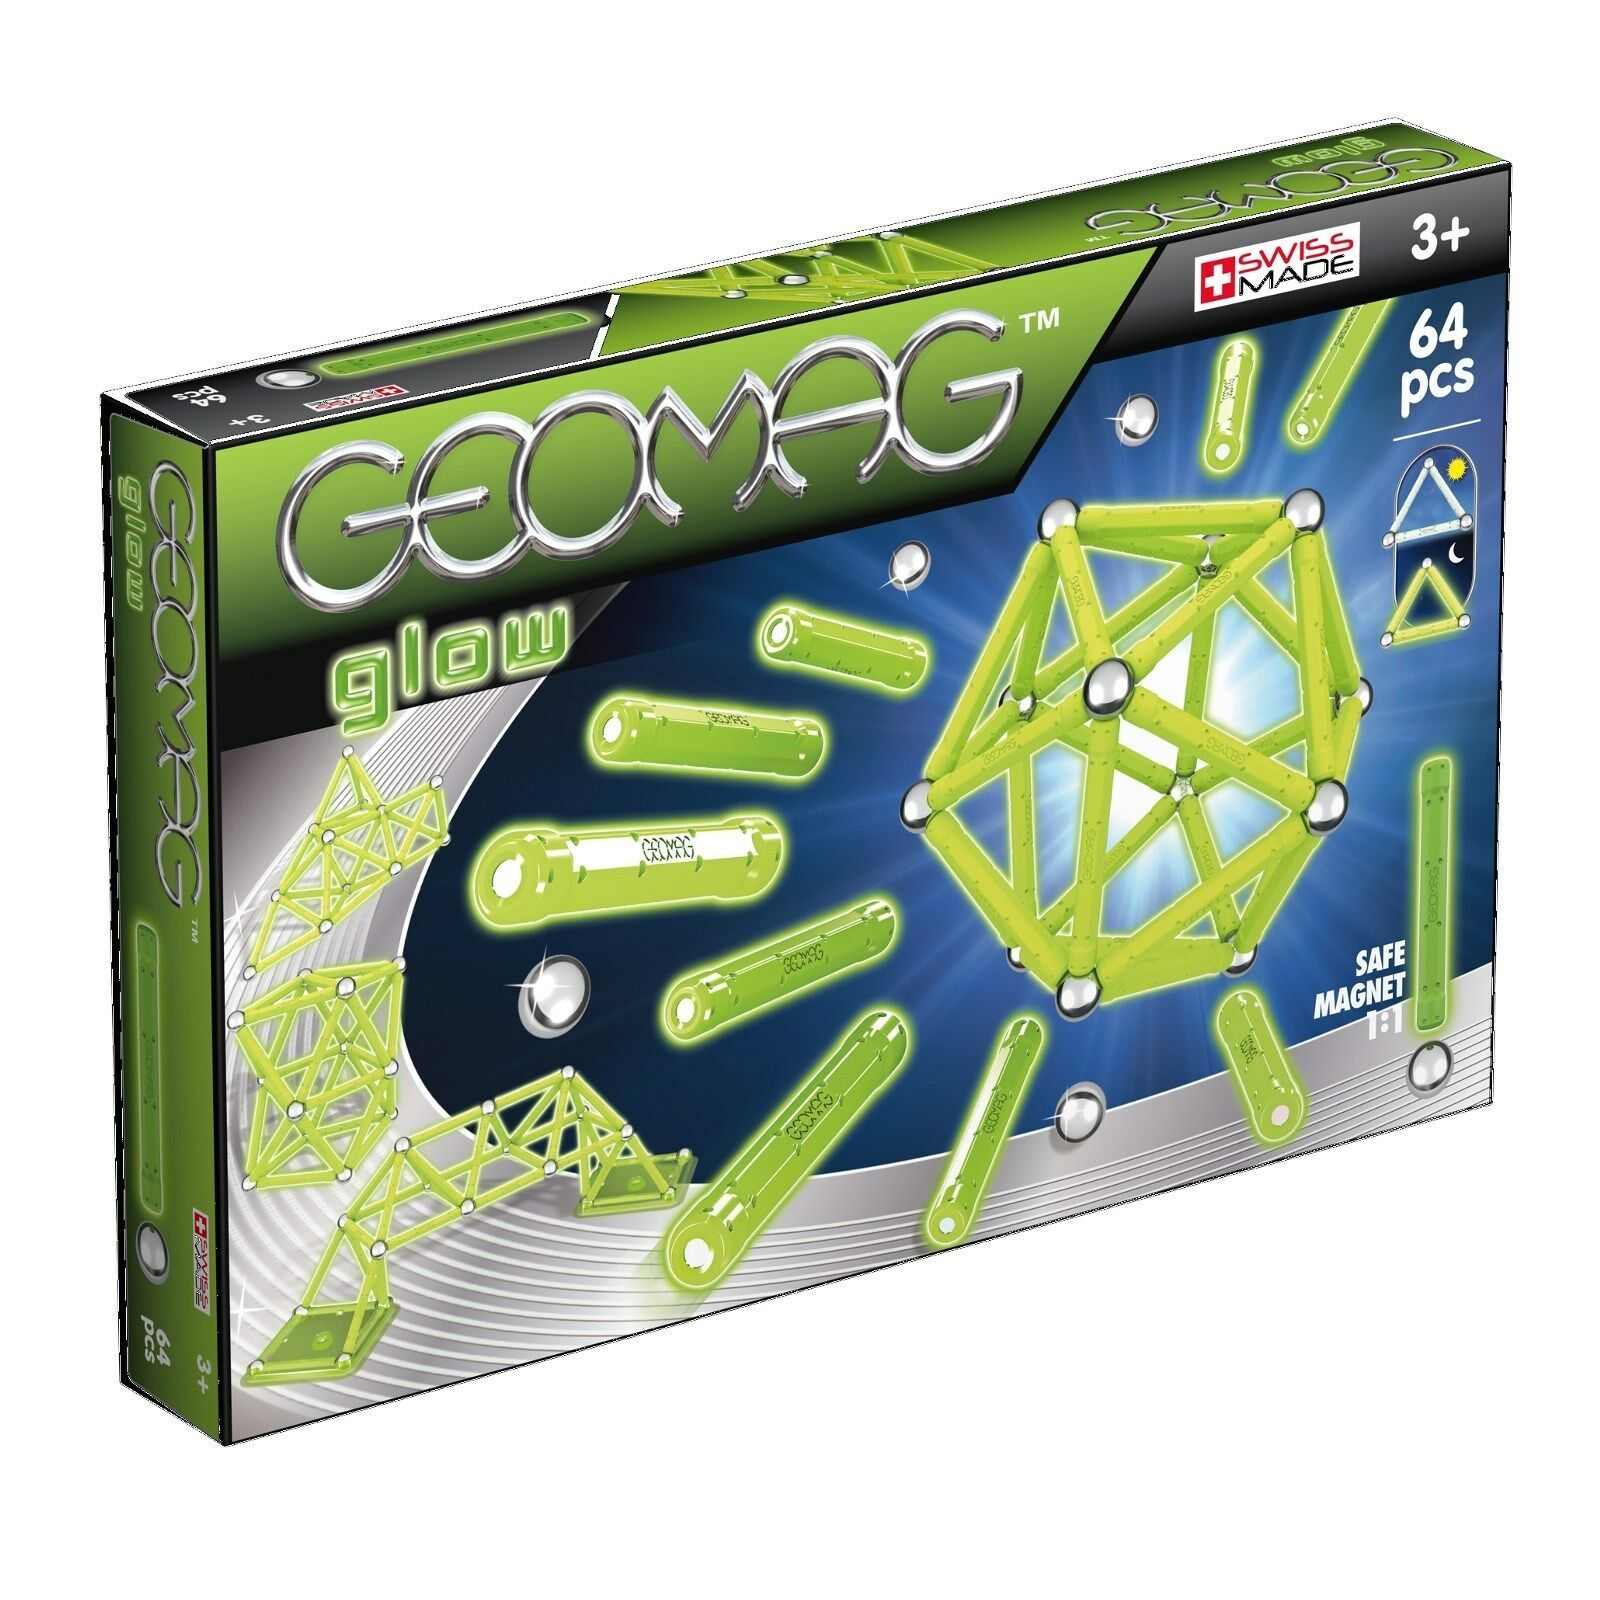 Geomag Glow 64 Pieces 336 Magnetic Construction Kit Original World